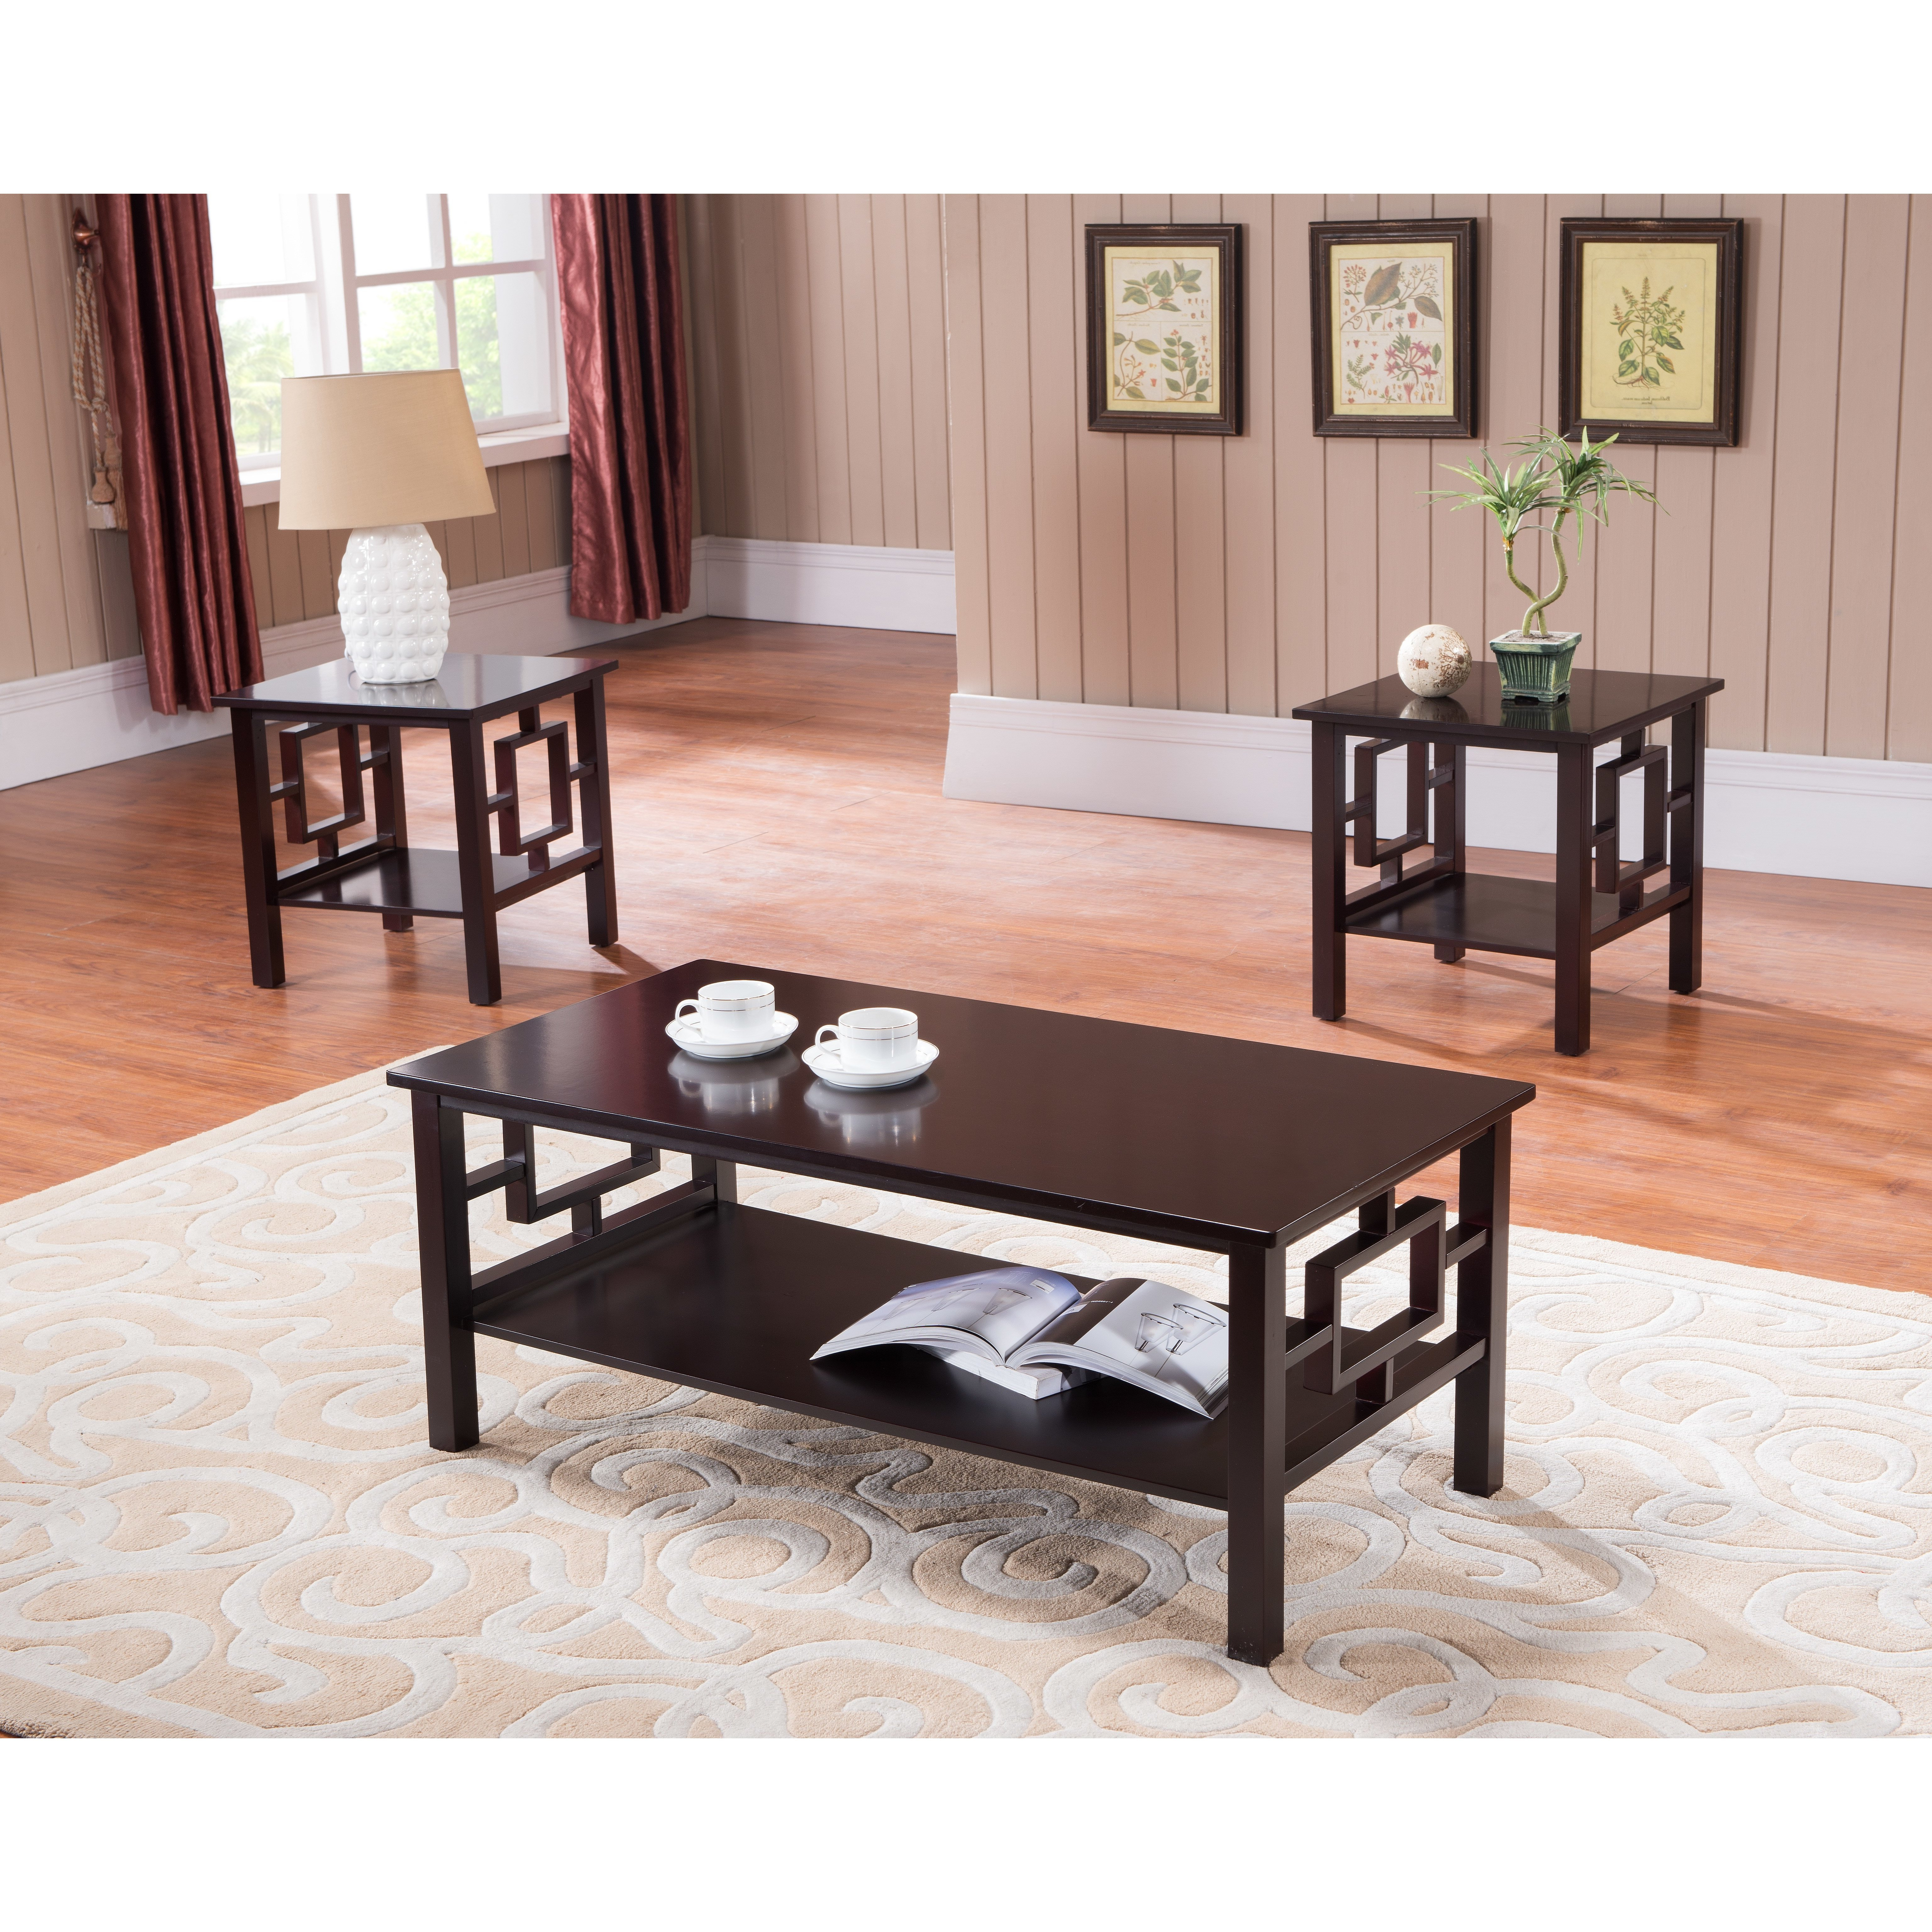 Recent Crownover 3 Piece Bar Table Sets regarding Red Table Set - Ronniebrownlifesystems